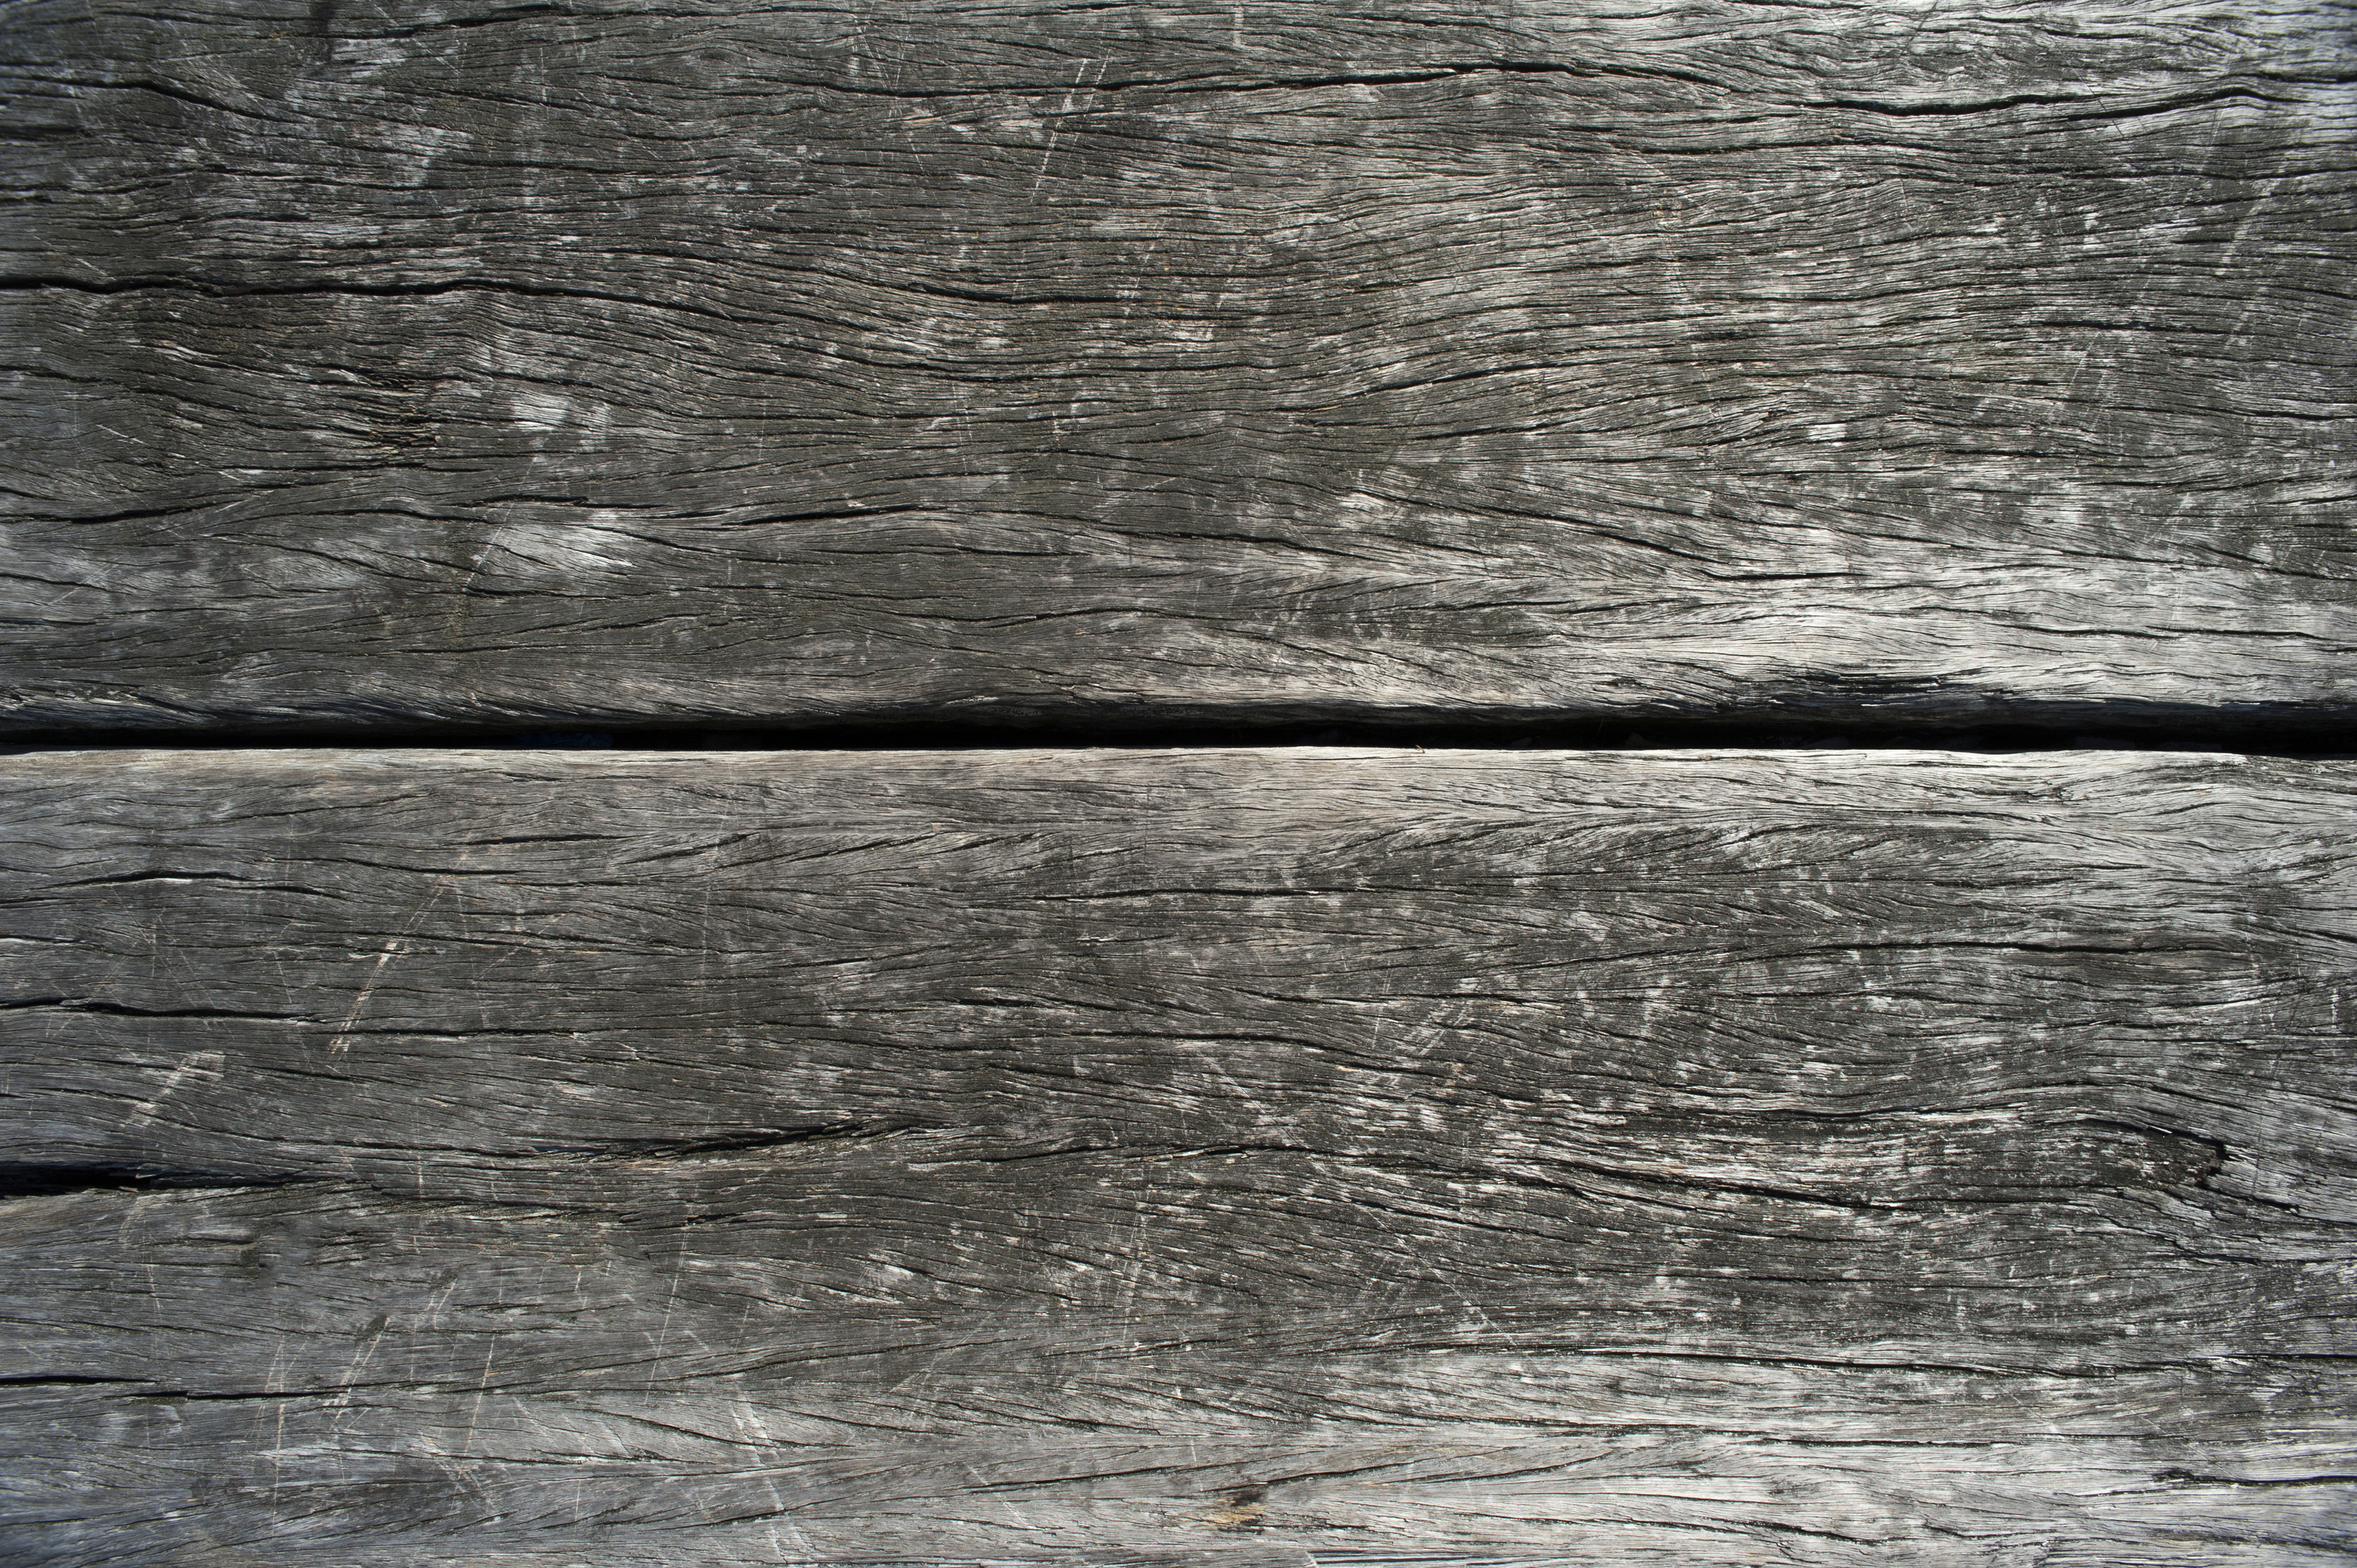 Rough Texture Background: Image Of Background Texture Of Old Rough Wooden Boards